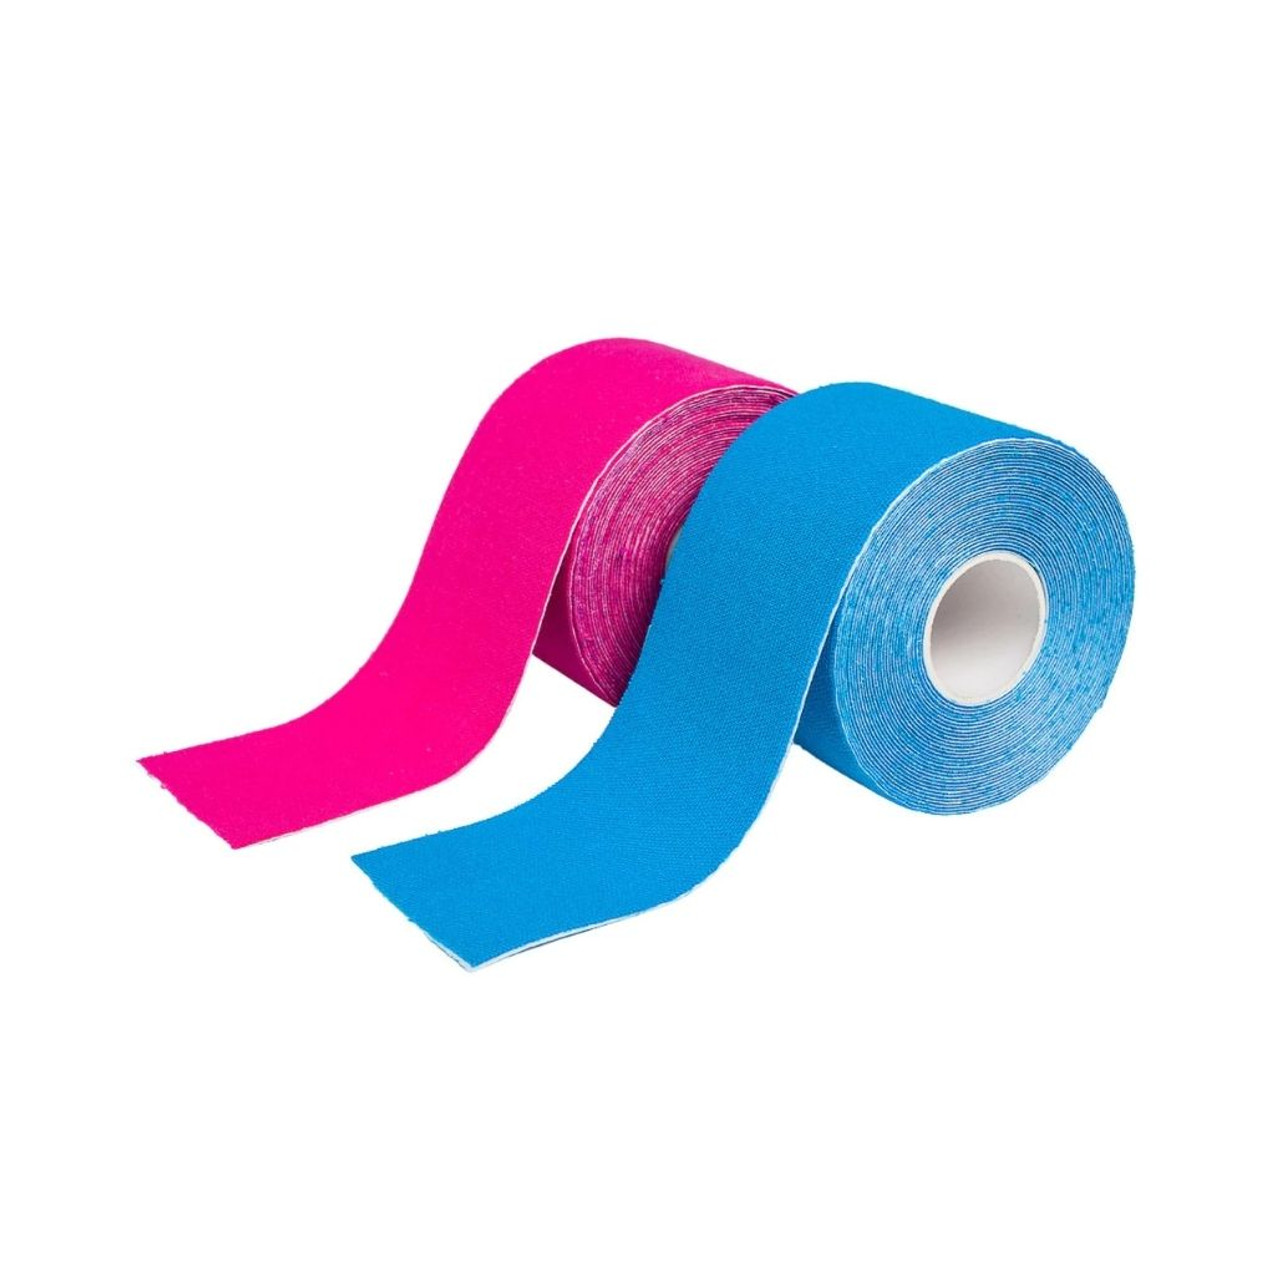 FDR2110 Kinesiology Tape Blue Pink | 5cm x 5m | Elasticated Sports Tape for Muscle Support